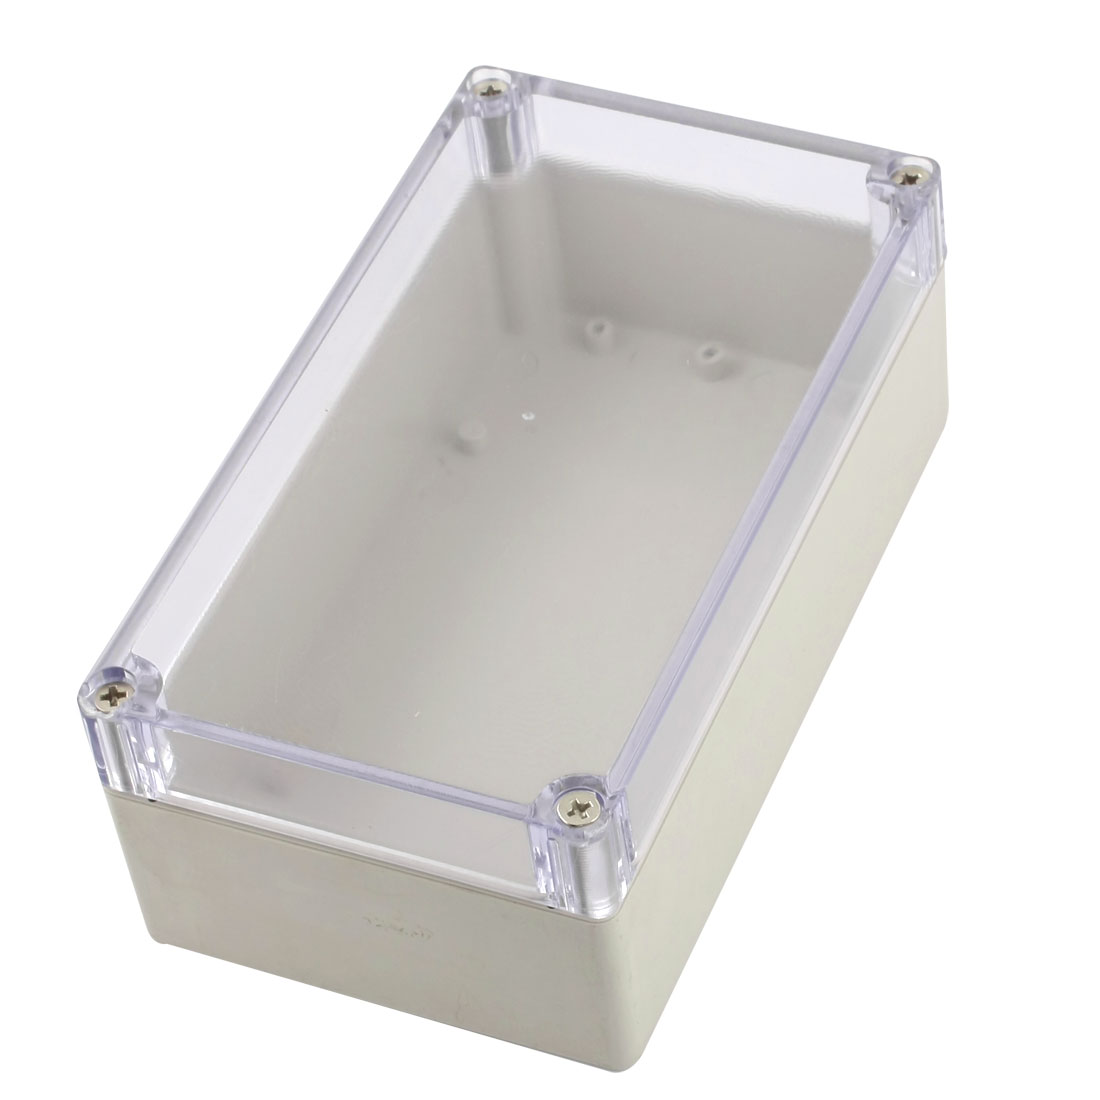 158mm x 90mm x 60mm Dustproof IP65 Clear Cover Plastic Sealed DIY Junction Enclose Box Power Protection Case